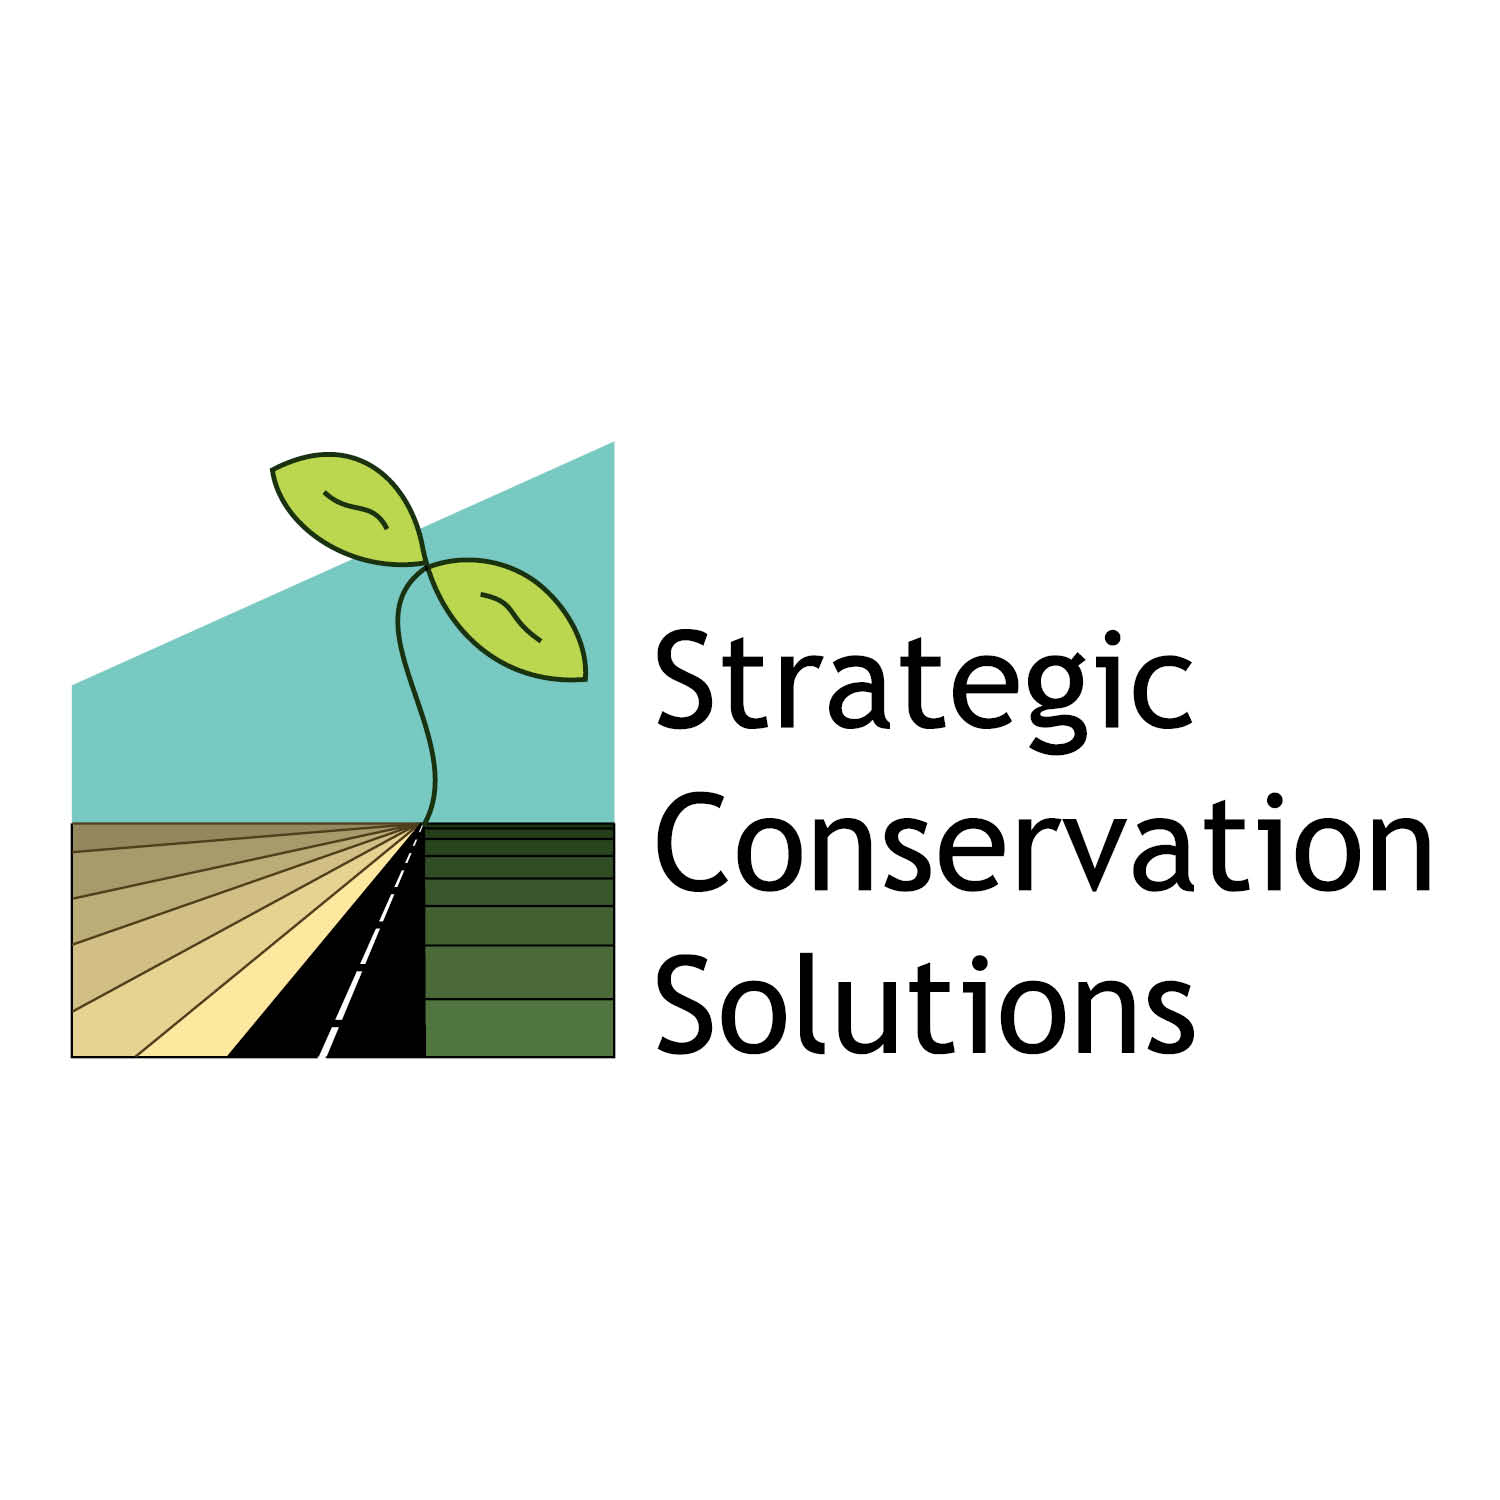 Strategic Conservation Solutions